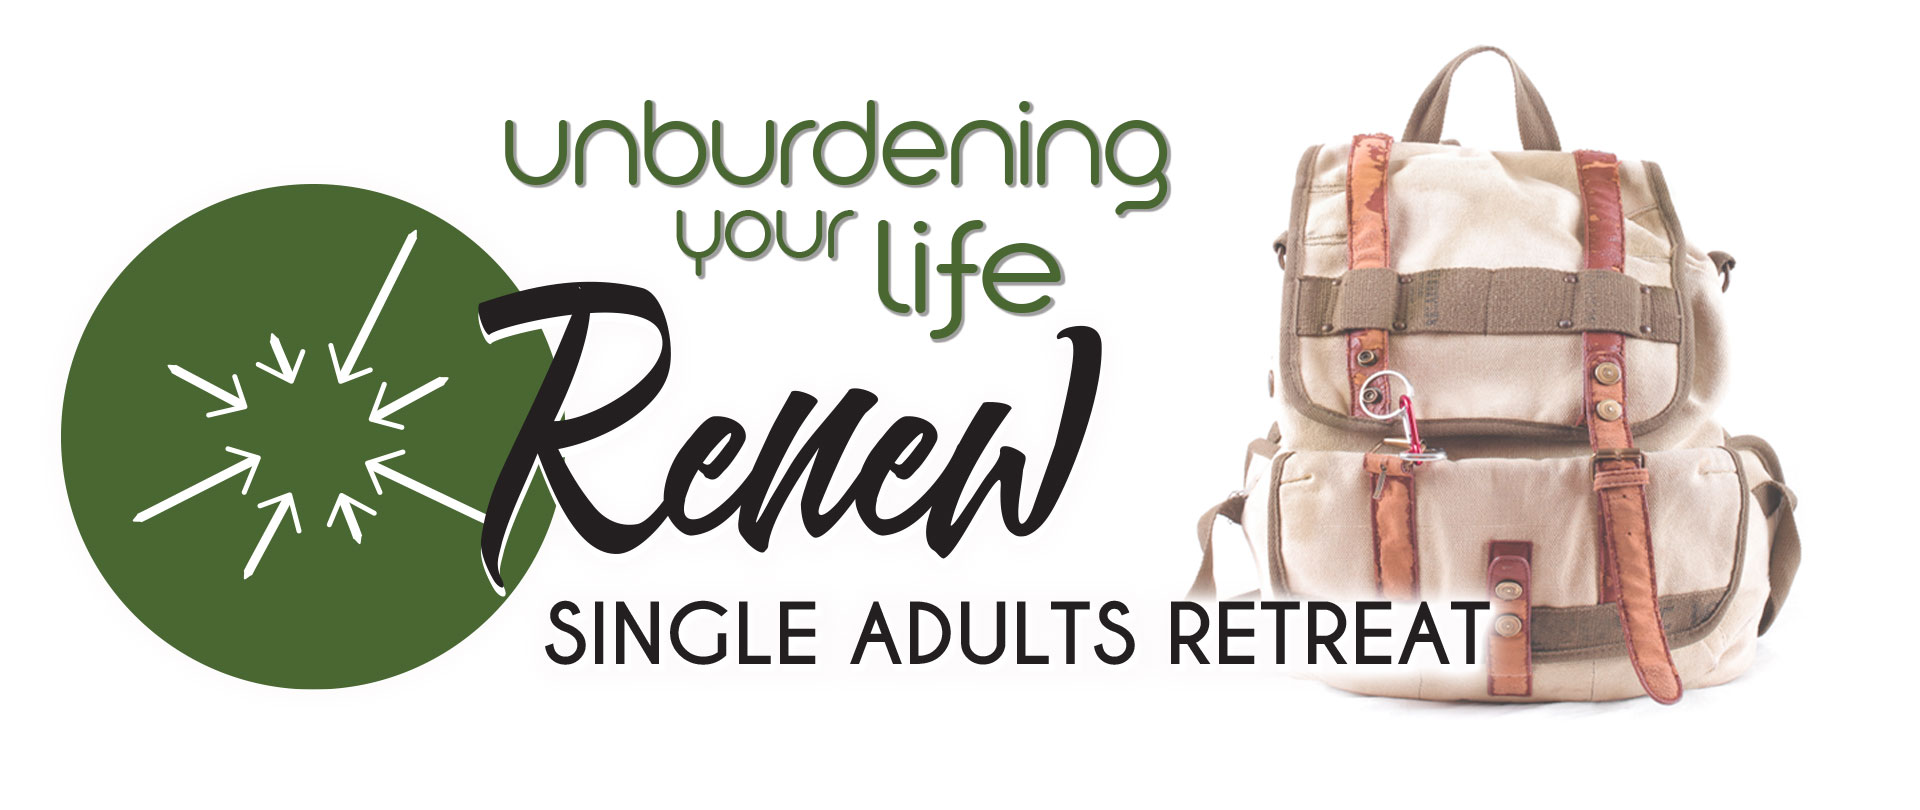 Single Adult Retreat